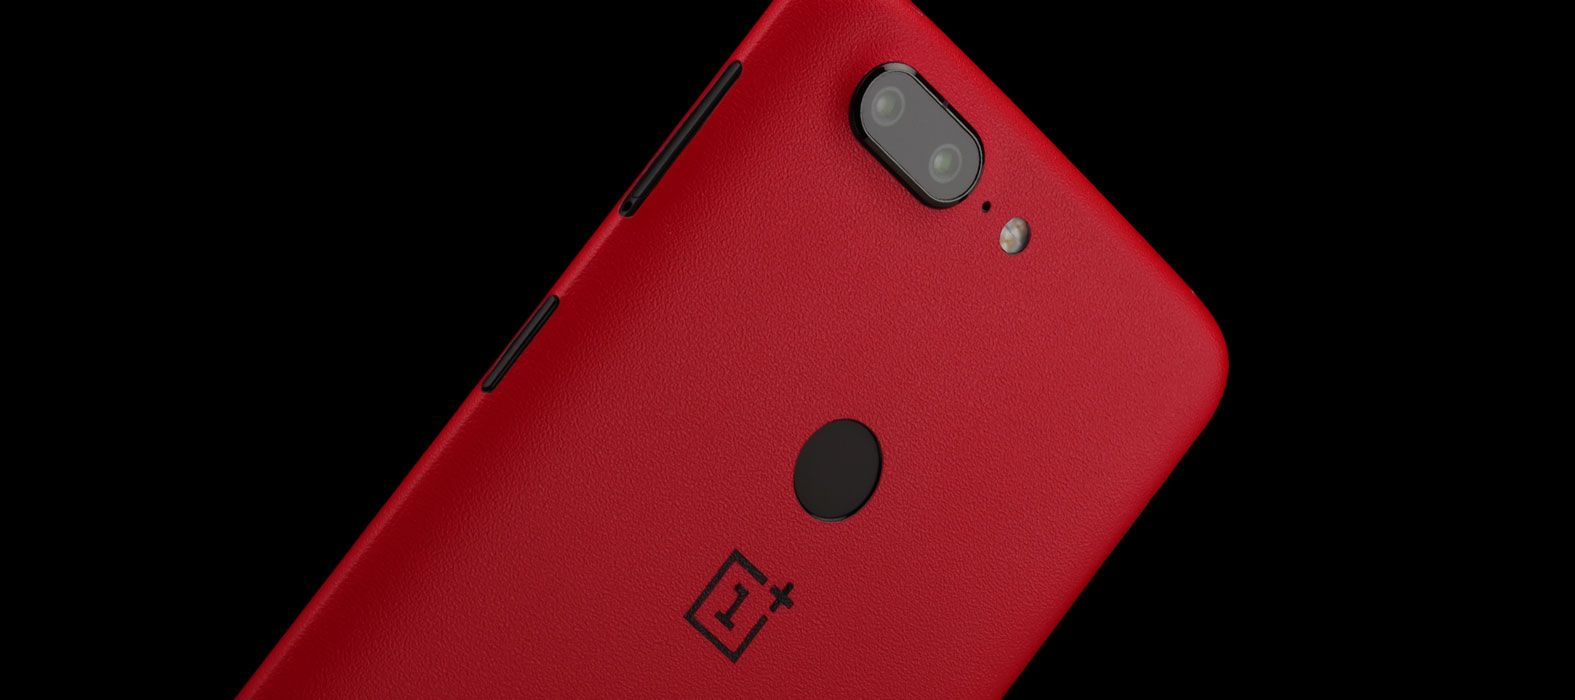 OnePlus 5T Skins, Decals, Wraps - Sandstone Red